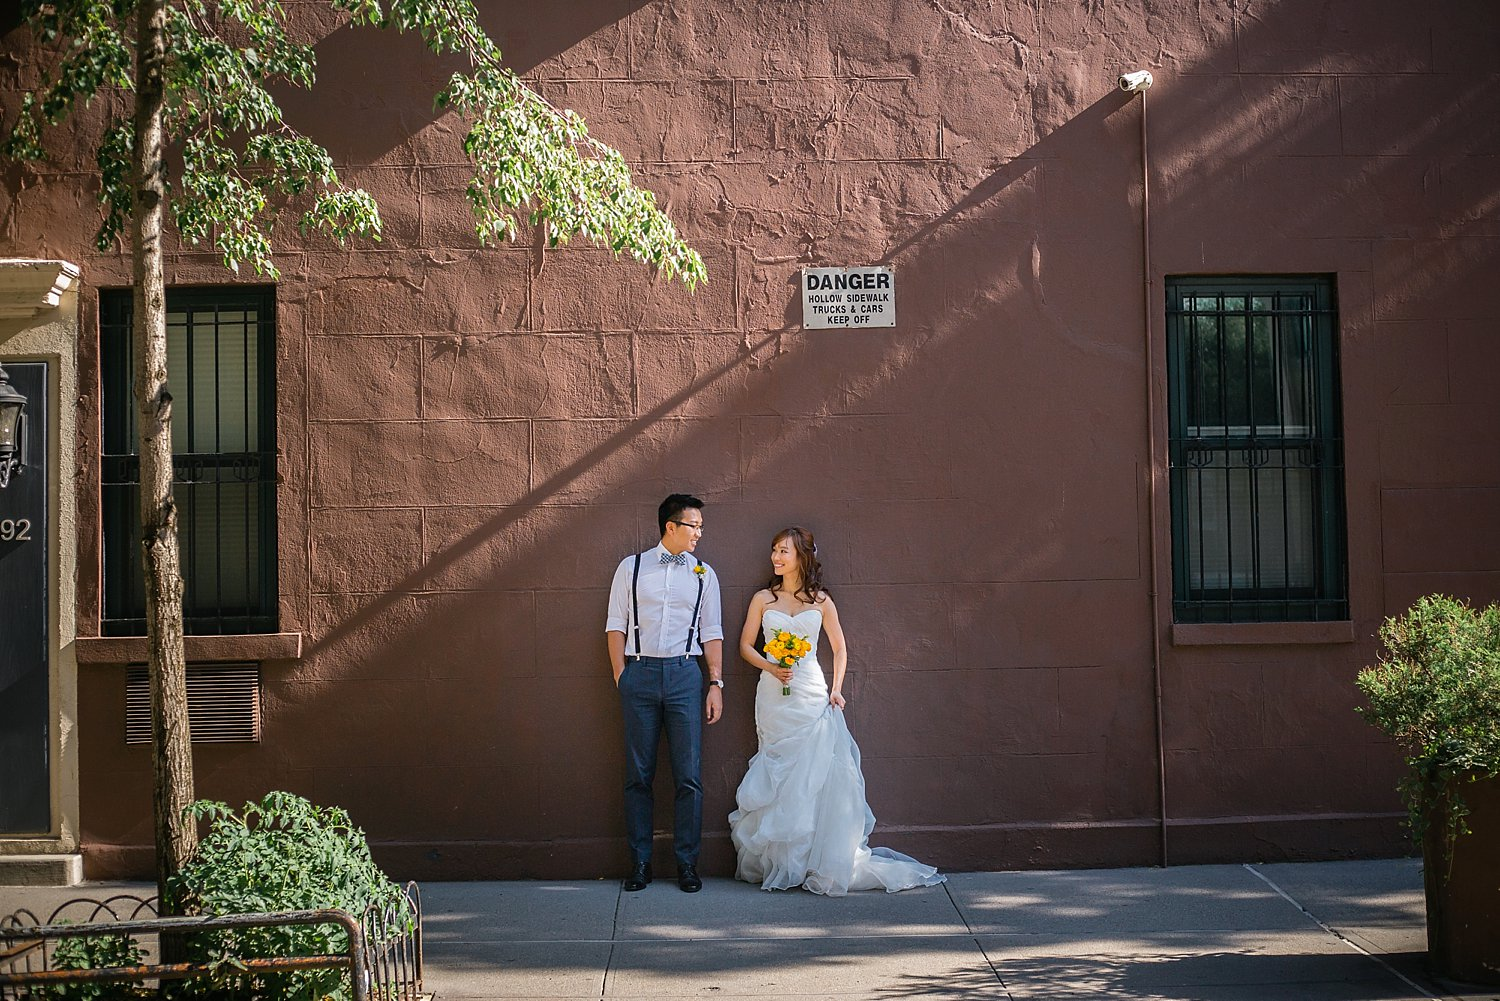 nyc-wedding-photography-nj-tri-state-cinematography-intothestory-by-moo-jae_0339.jpg